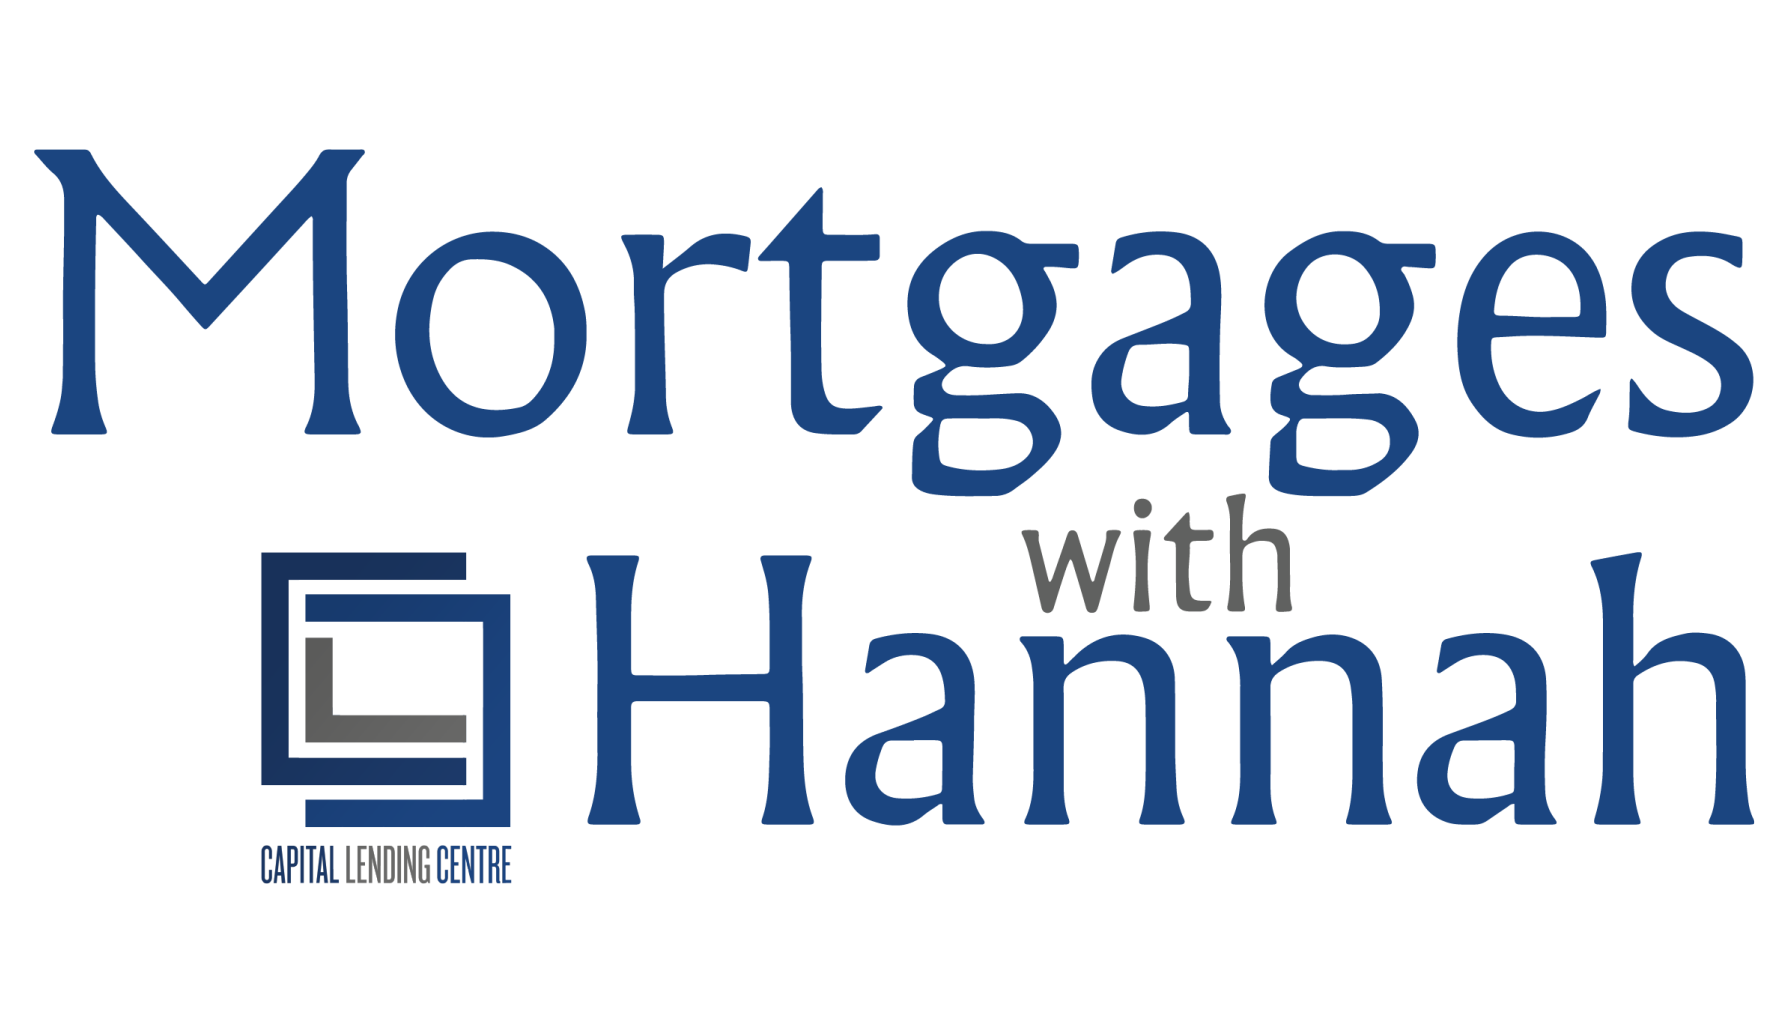 Mortgages with Hannah logo